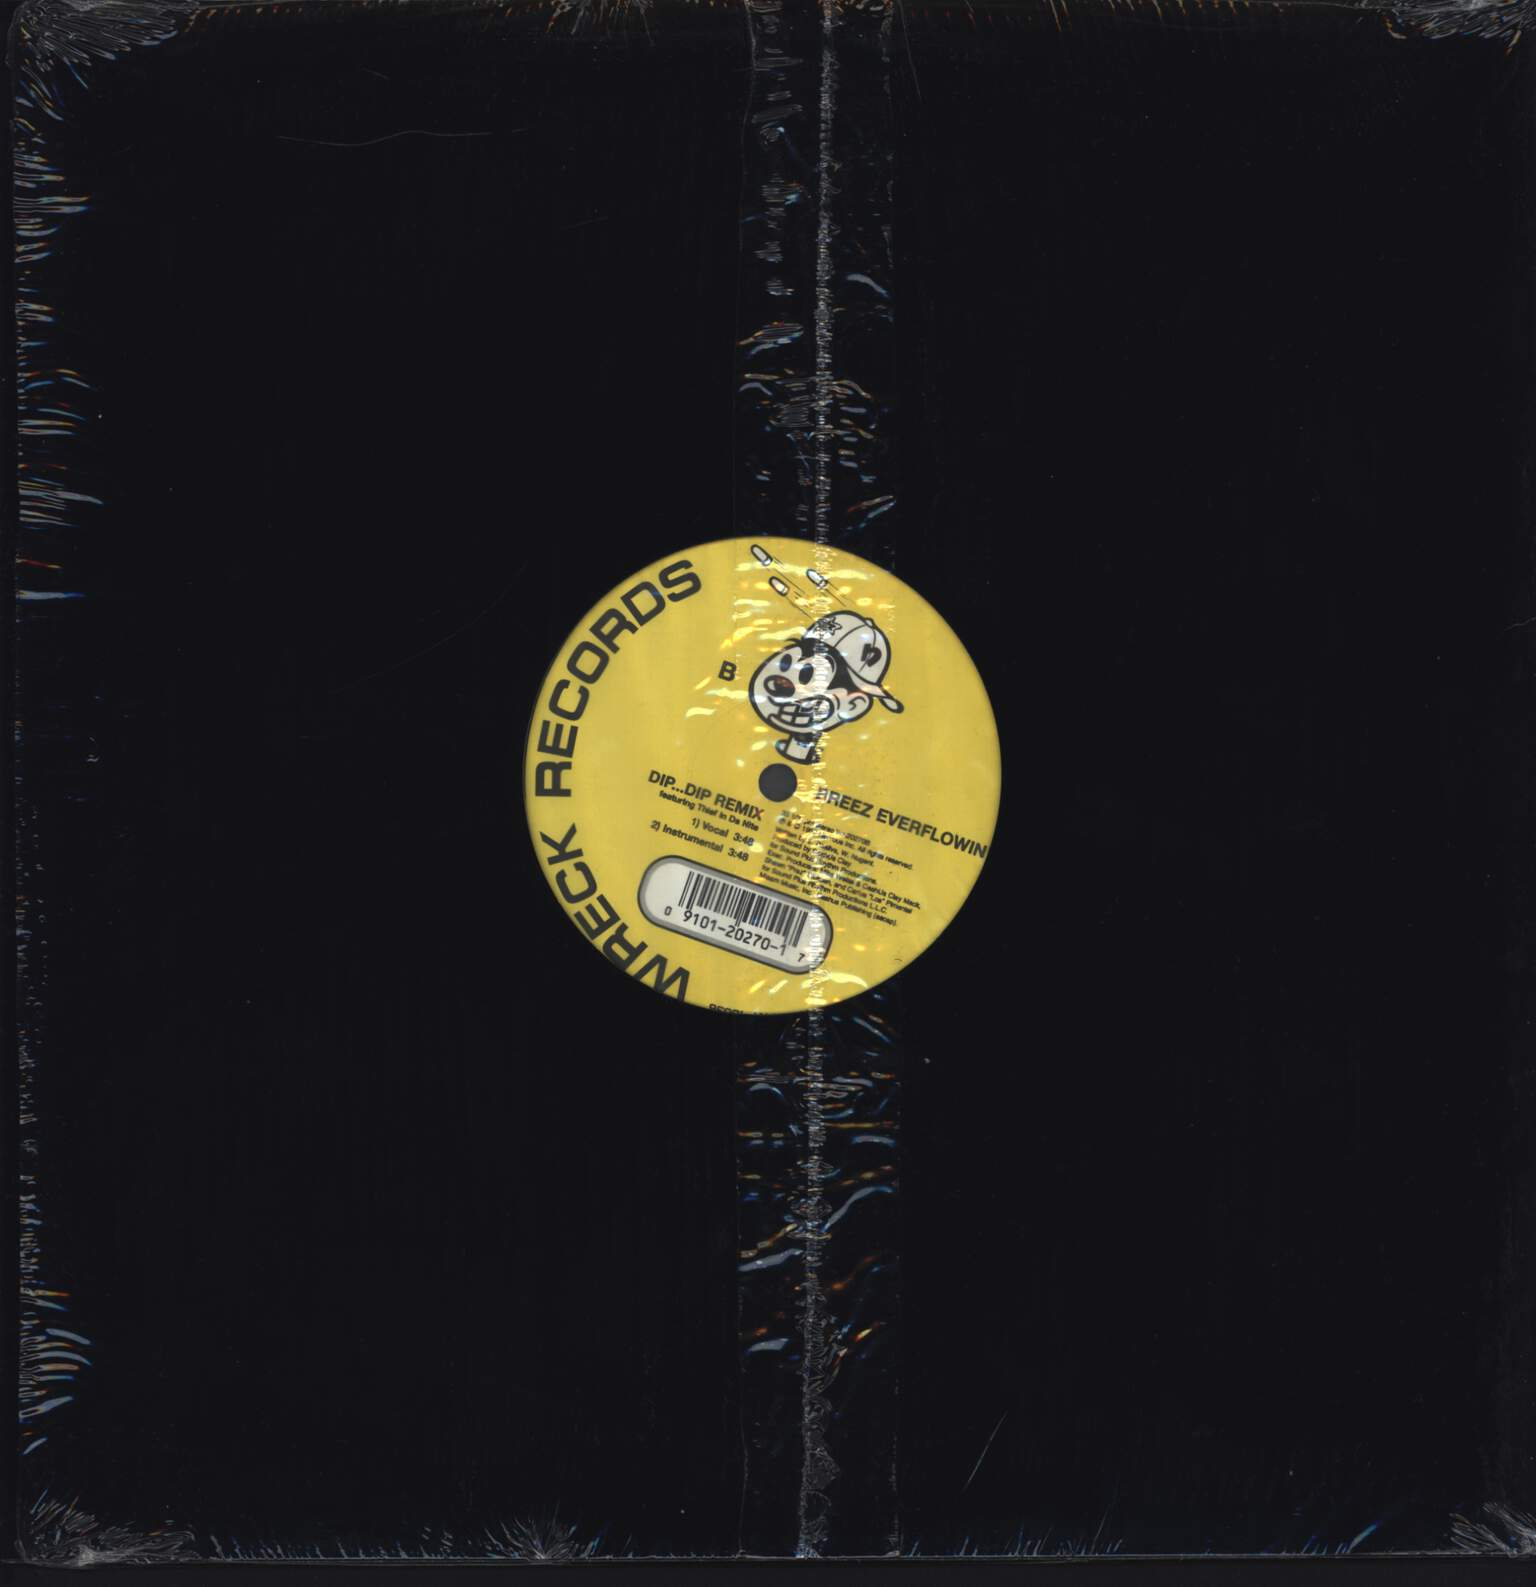 "Breez Evahflowin: I Heard It / Dip Dip Remix, 12"" Maxi Single (Vinyl)"